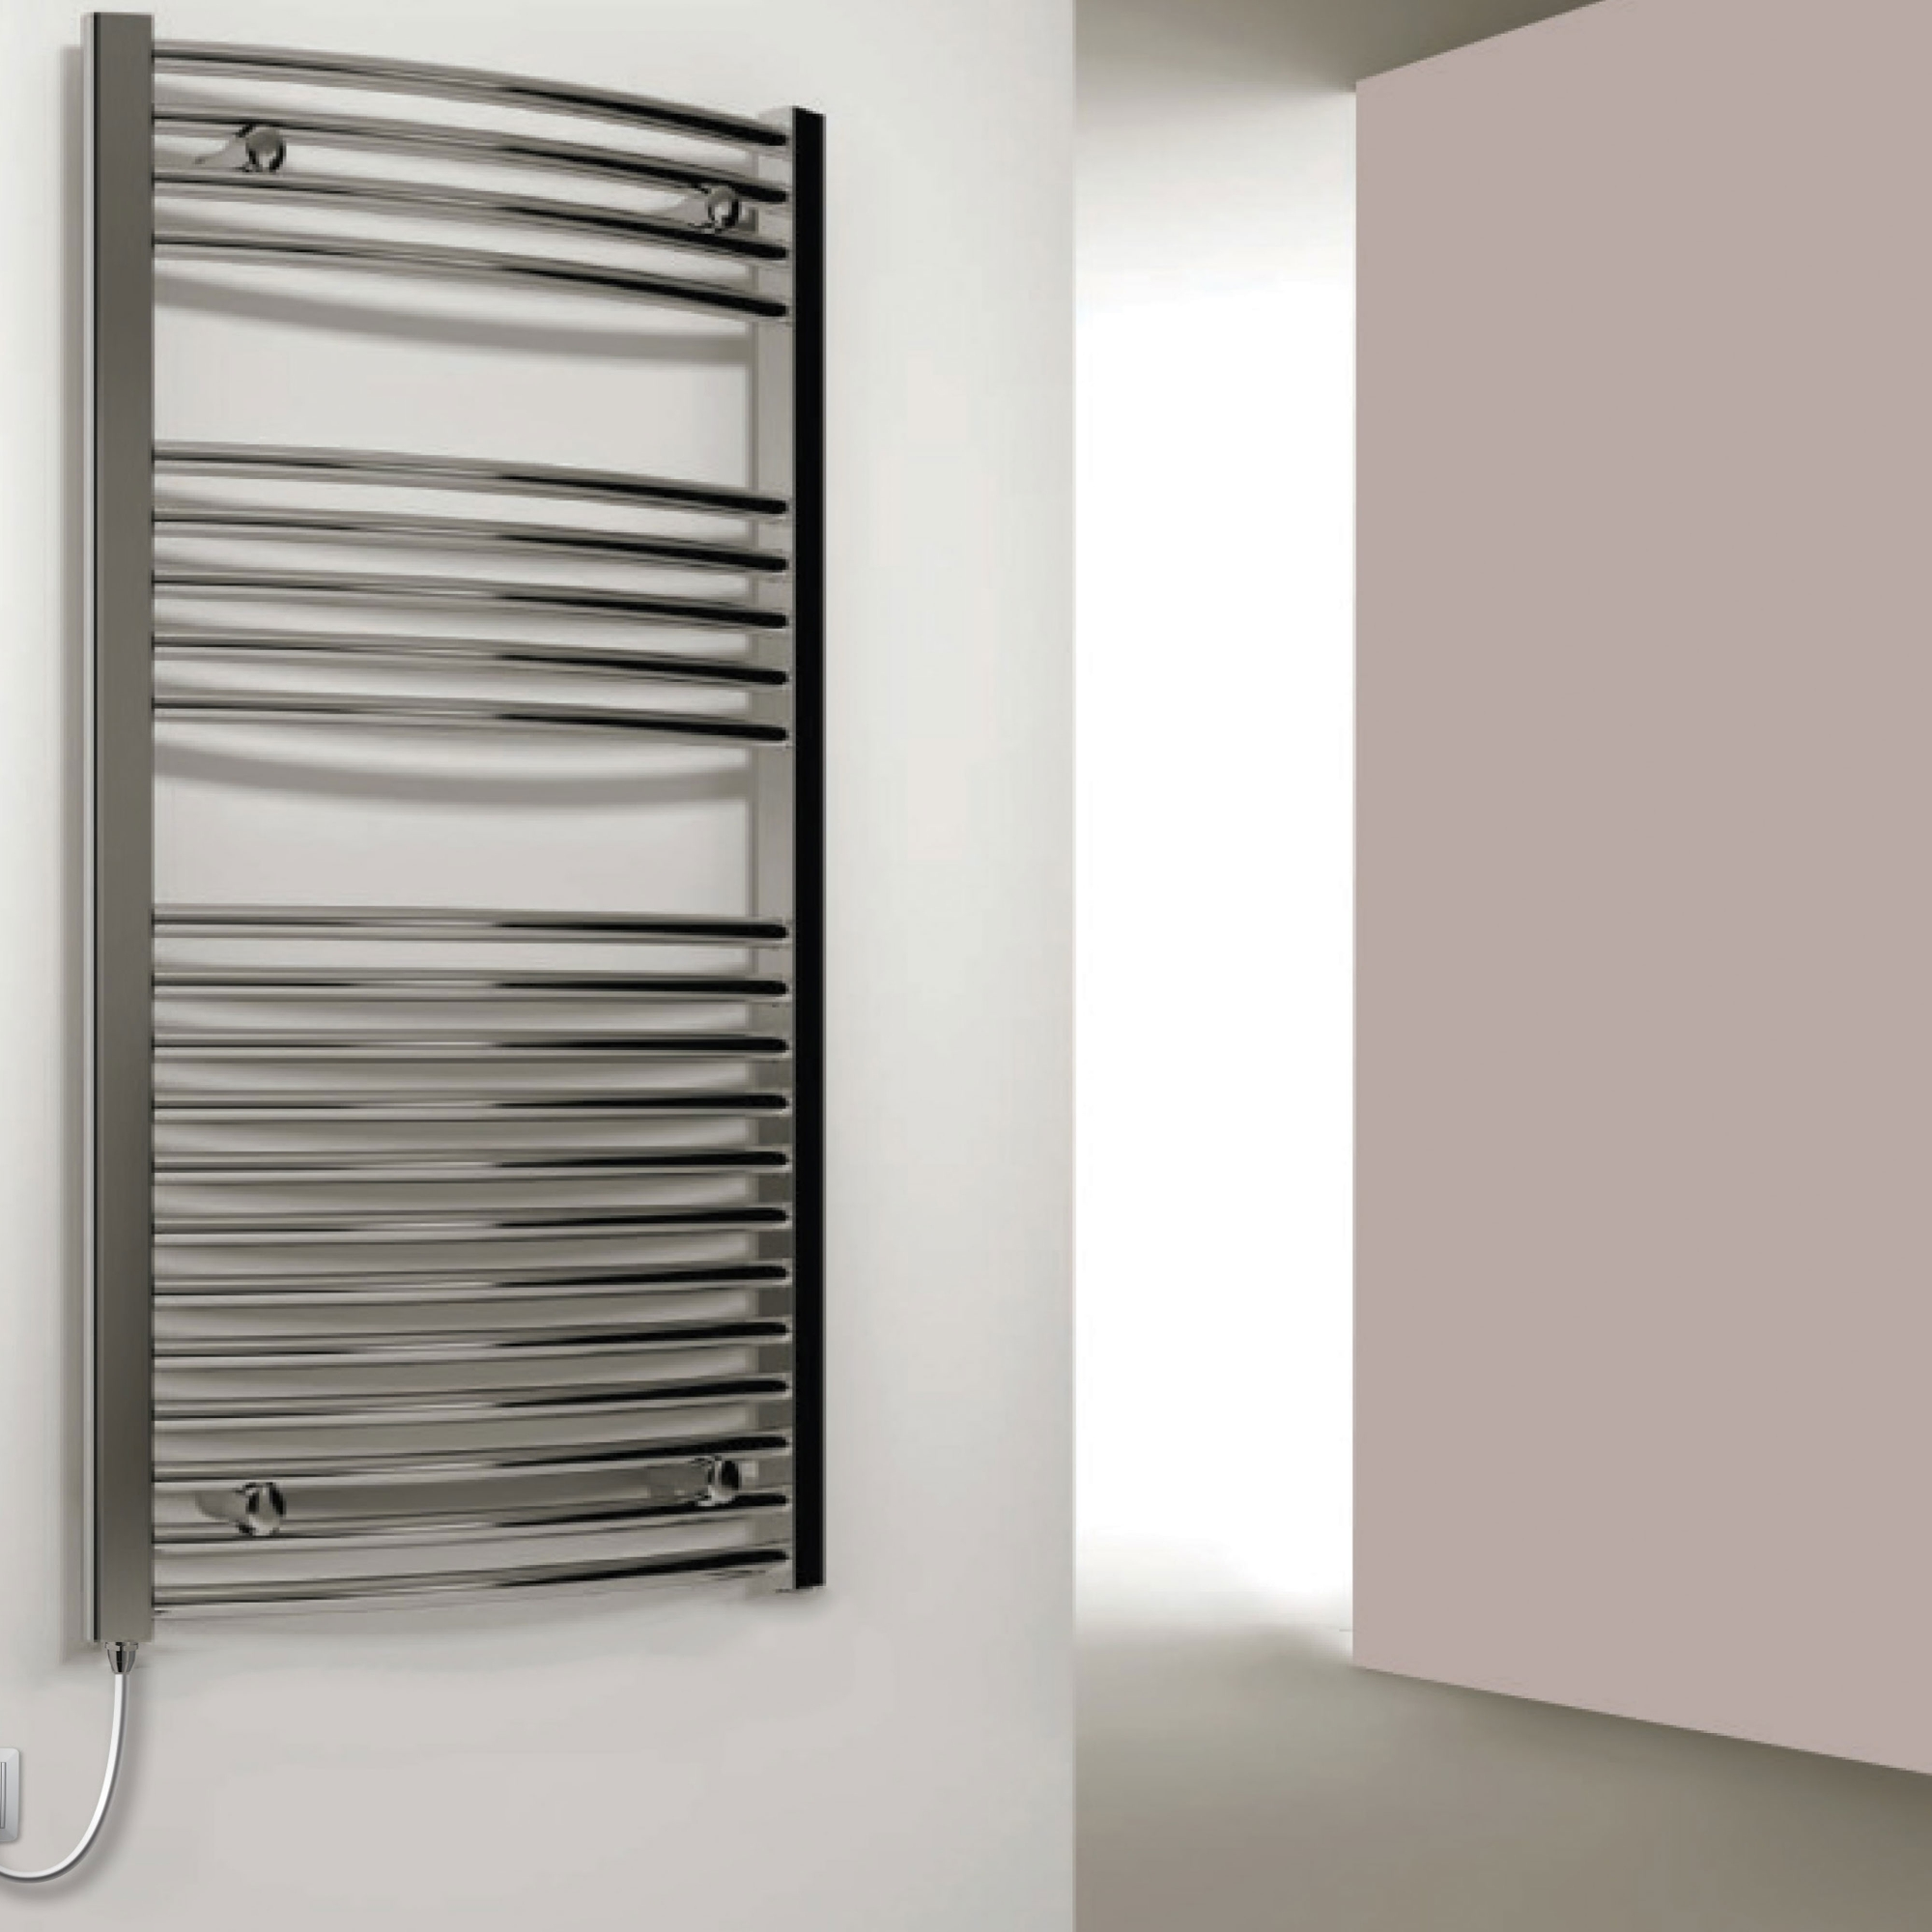 Reina Capo Curved Thermostatic Electric Heated Towel Rail 1600mm H x 600mm W Chrome